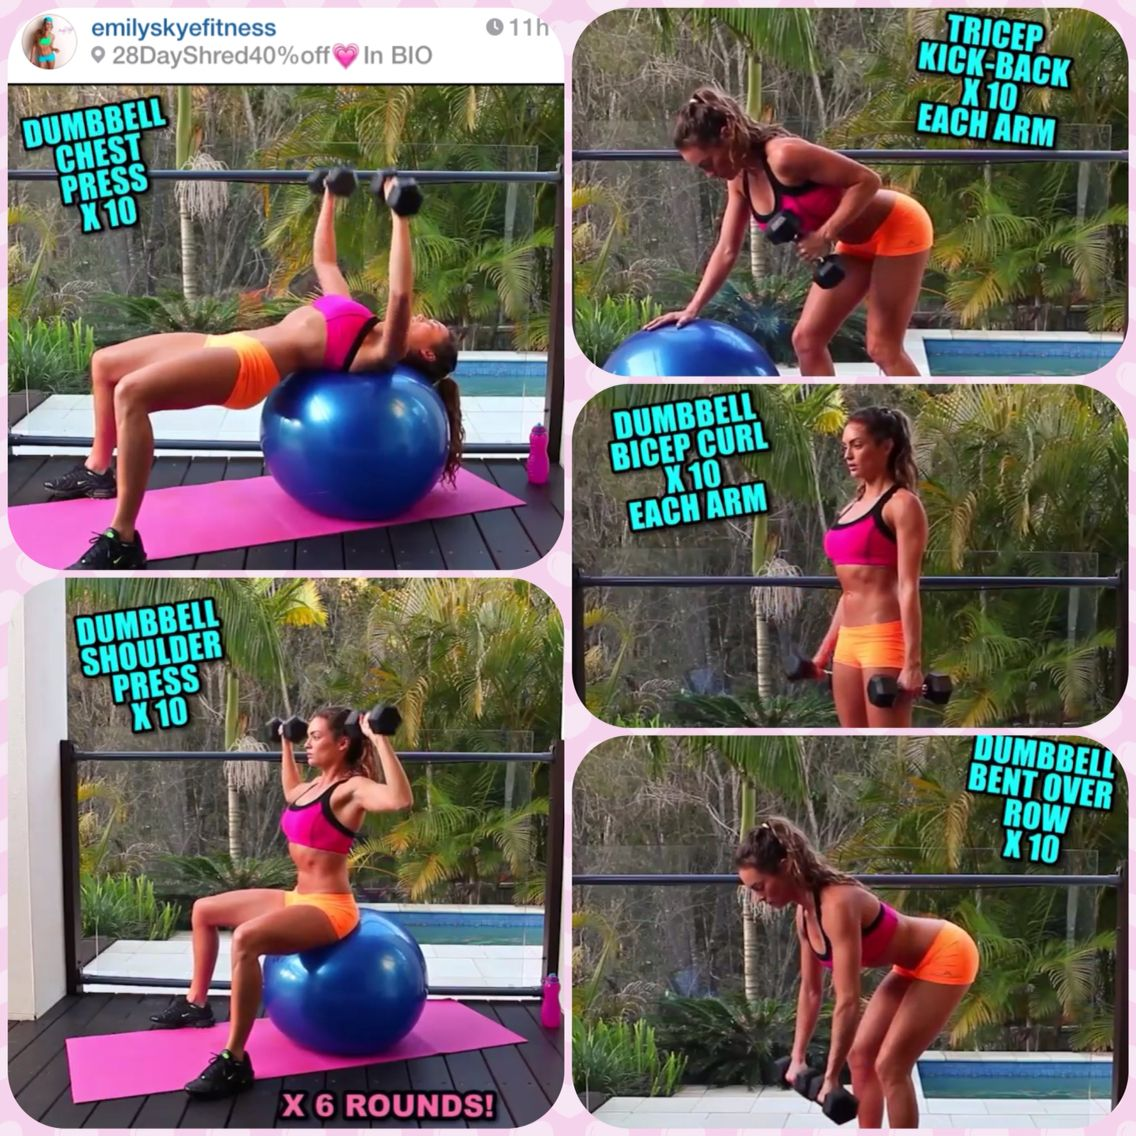 Arm day by Emily Skye. Do 10 of each set, 6 times around! I could only do 3 times last night after running...might want to do 3 times, run half as much, then finish the other 3 times. Love this chicks instagram. She's so helpful! #EmilySkyeFitness #ArmDay